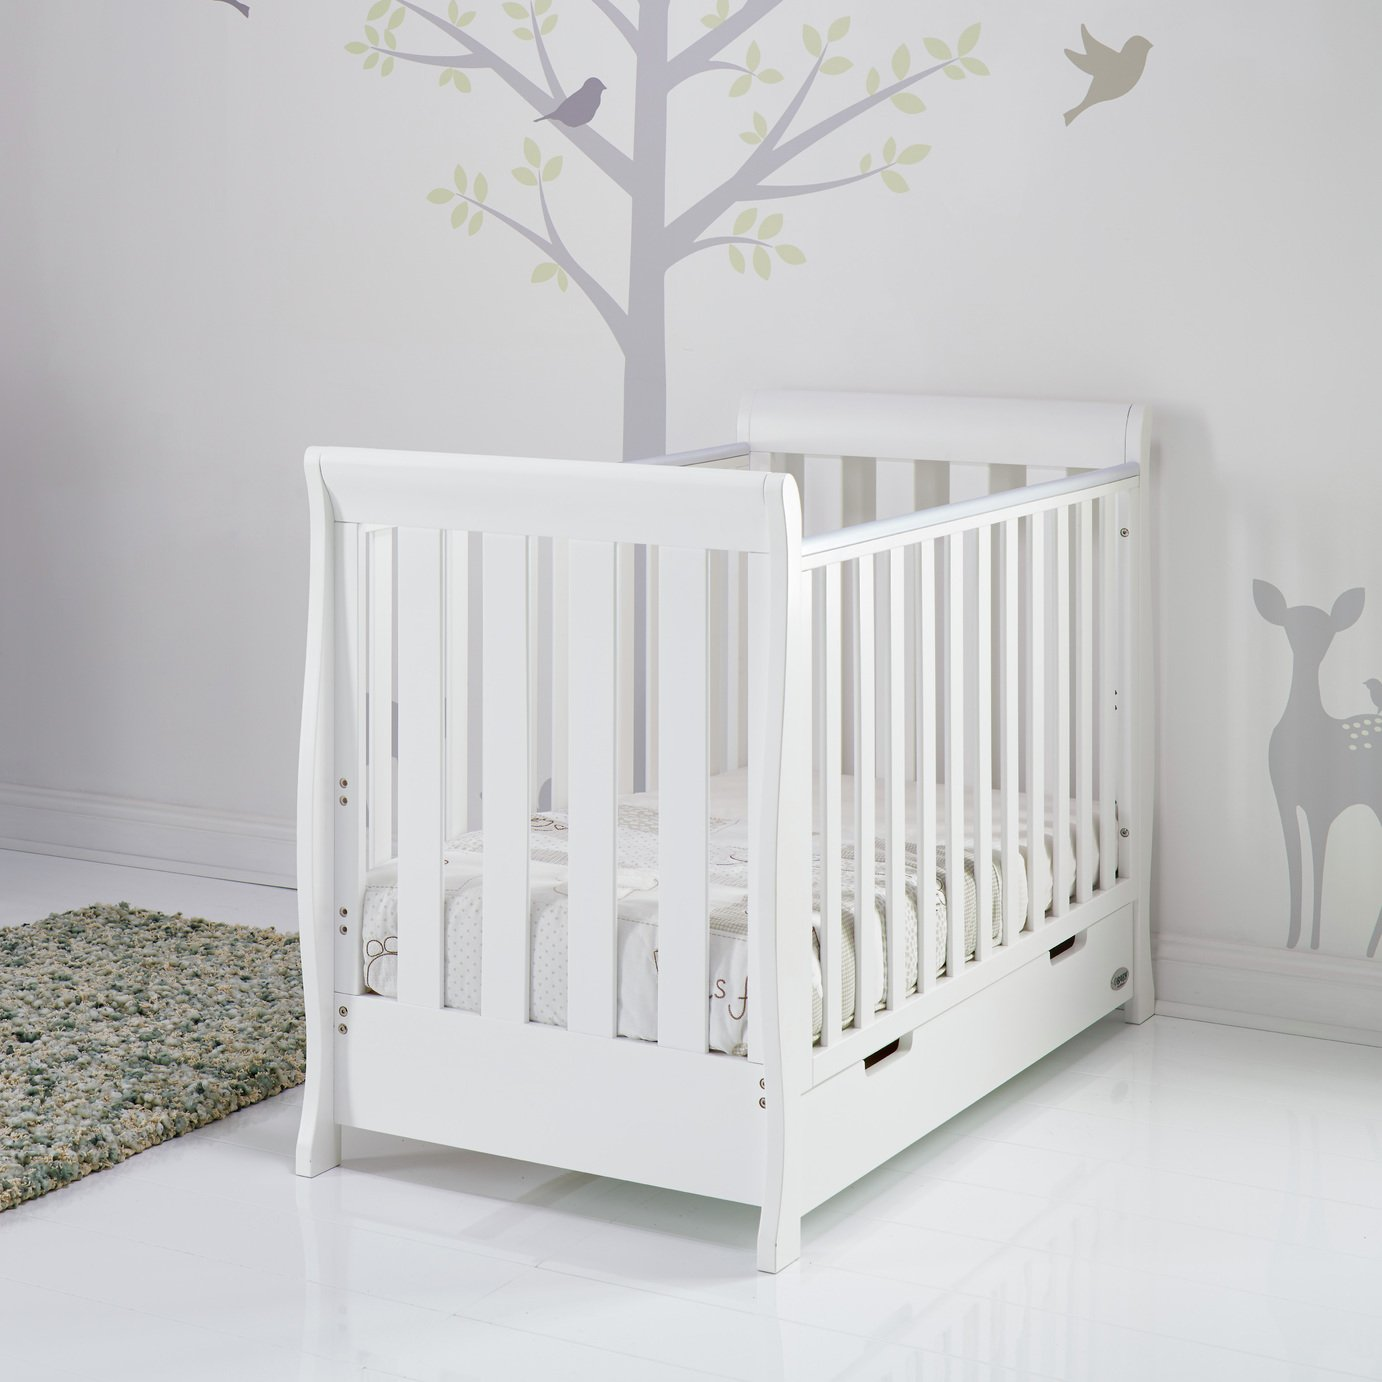 obaby stamford mini cot bed review. Black Bedroom Furniture Sets. Home Design Ideas